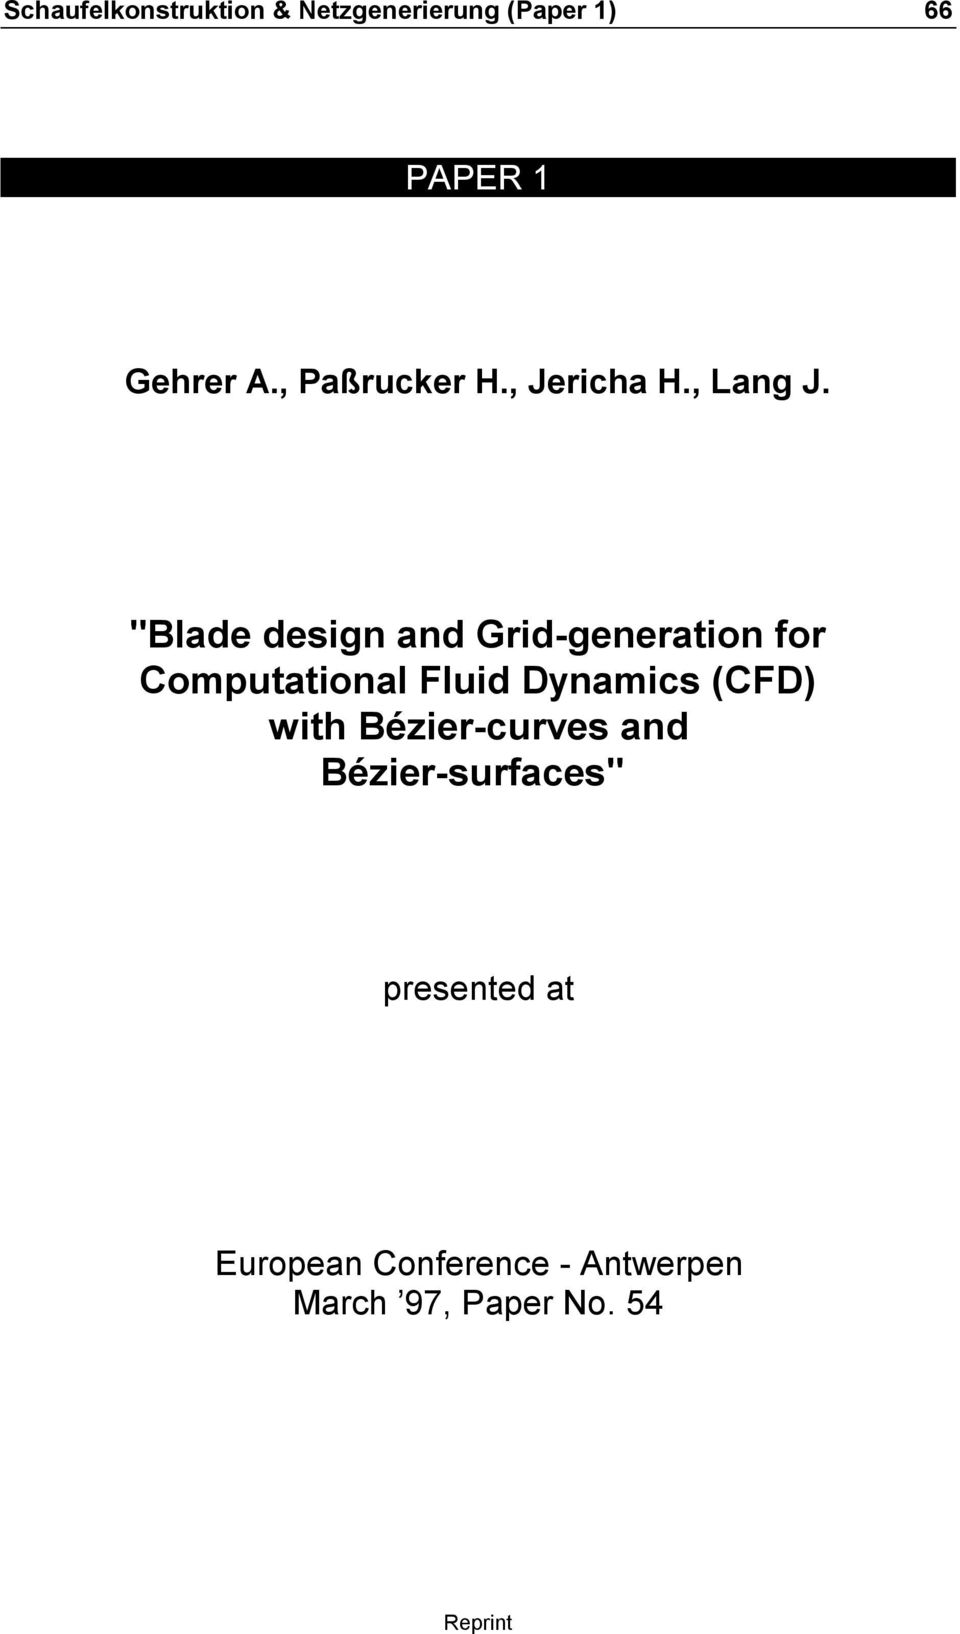 """Blade desig ad Grid-geeratio for Computatioal Fluid Dyamics (CFD)"